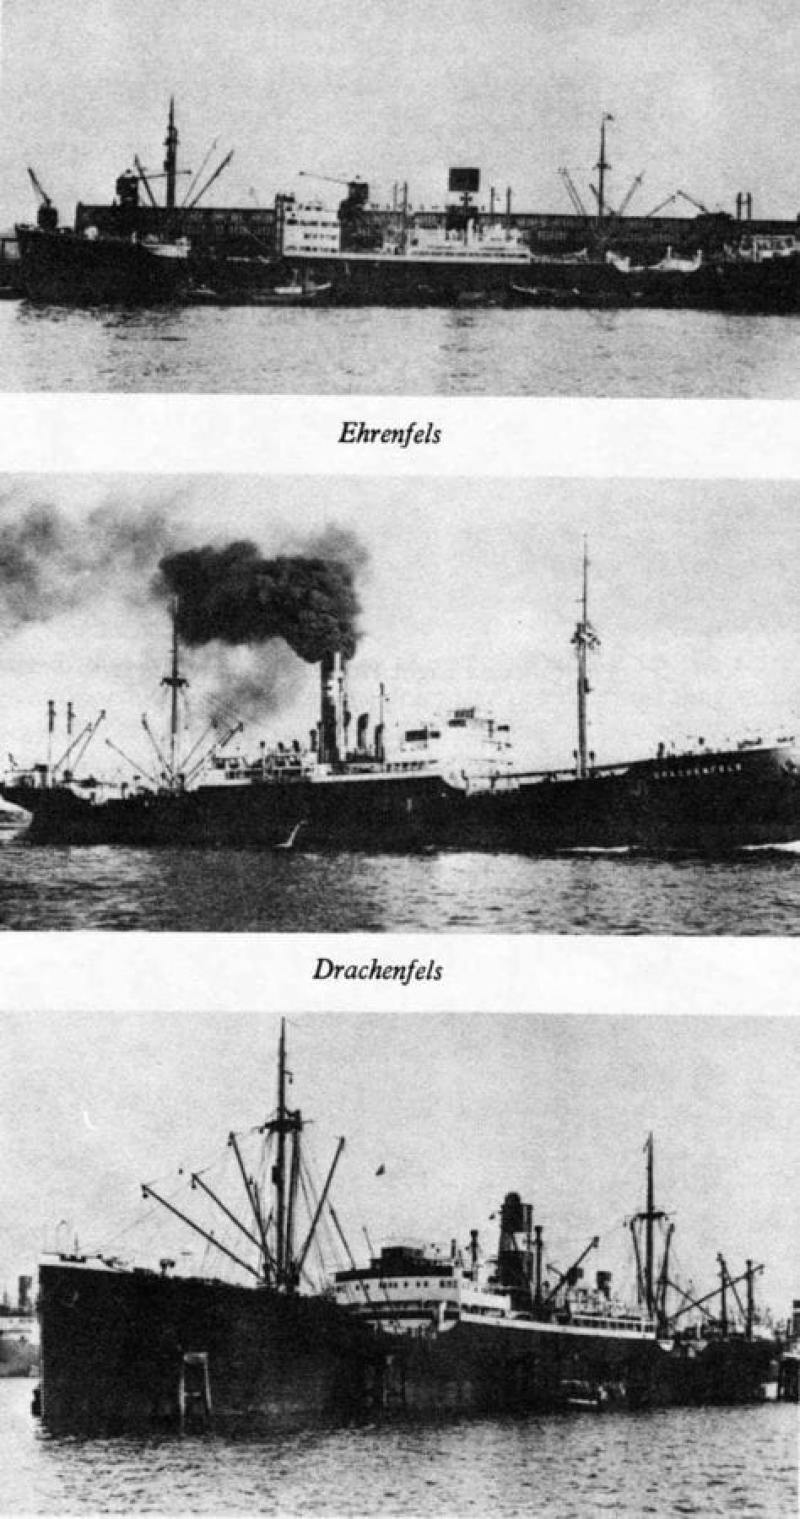 The three German merchantmen who took refuge in Mormugao, Goa, after the outbreak of World War II. The Ehrenfels was the target of the raid. Photo courtesy of Arnhemjim